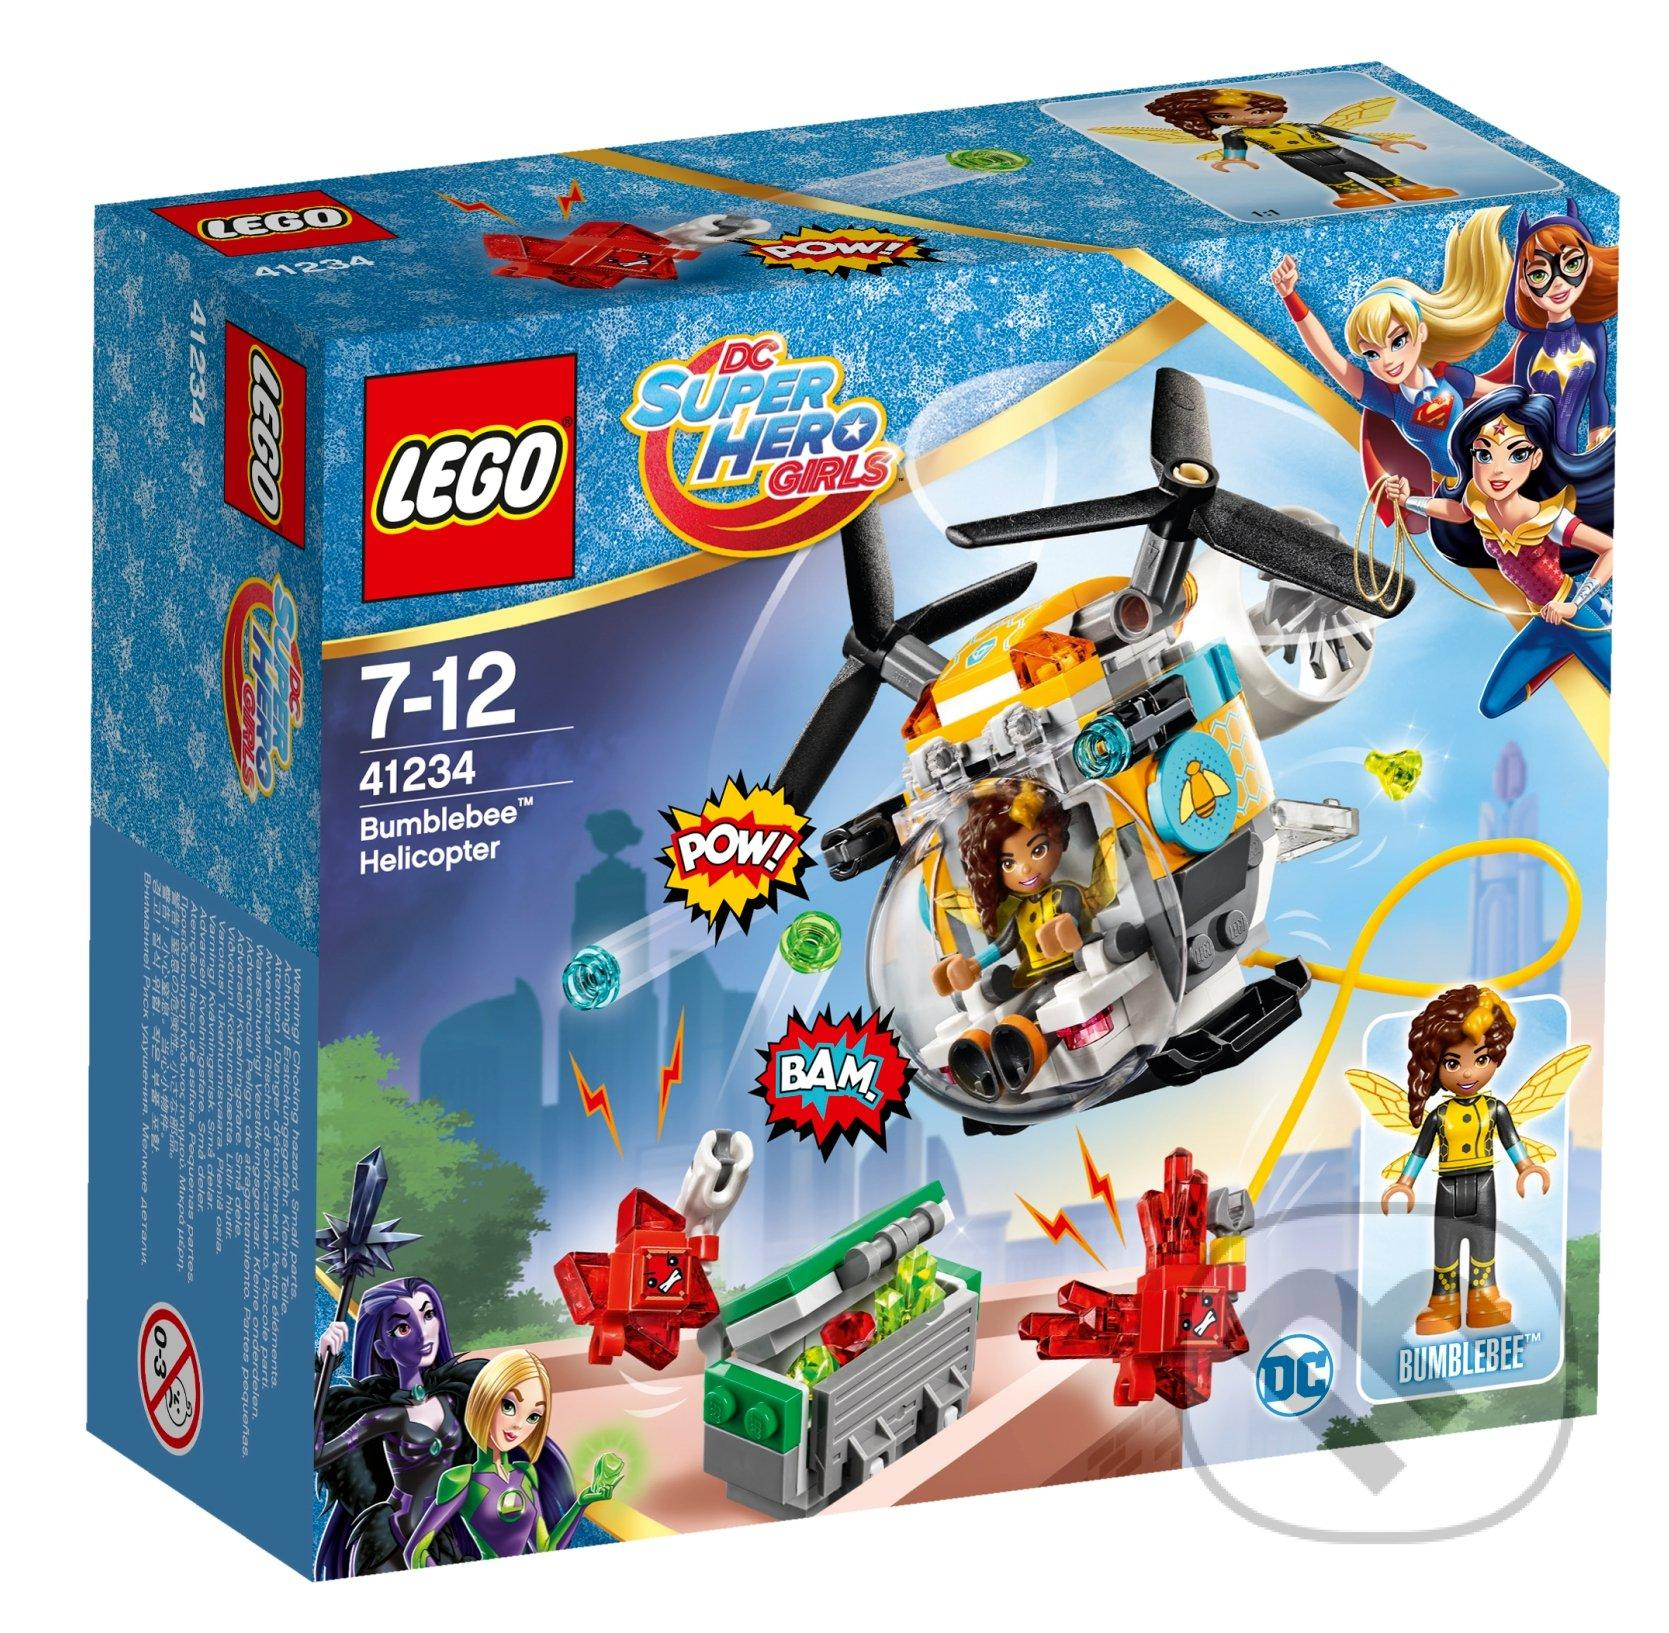 Lego DC Super Hero Gilrs Bumblebee Helicopter